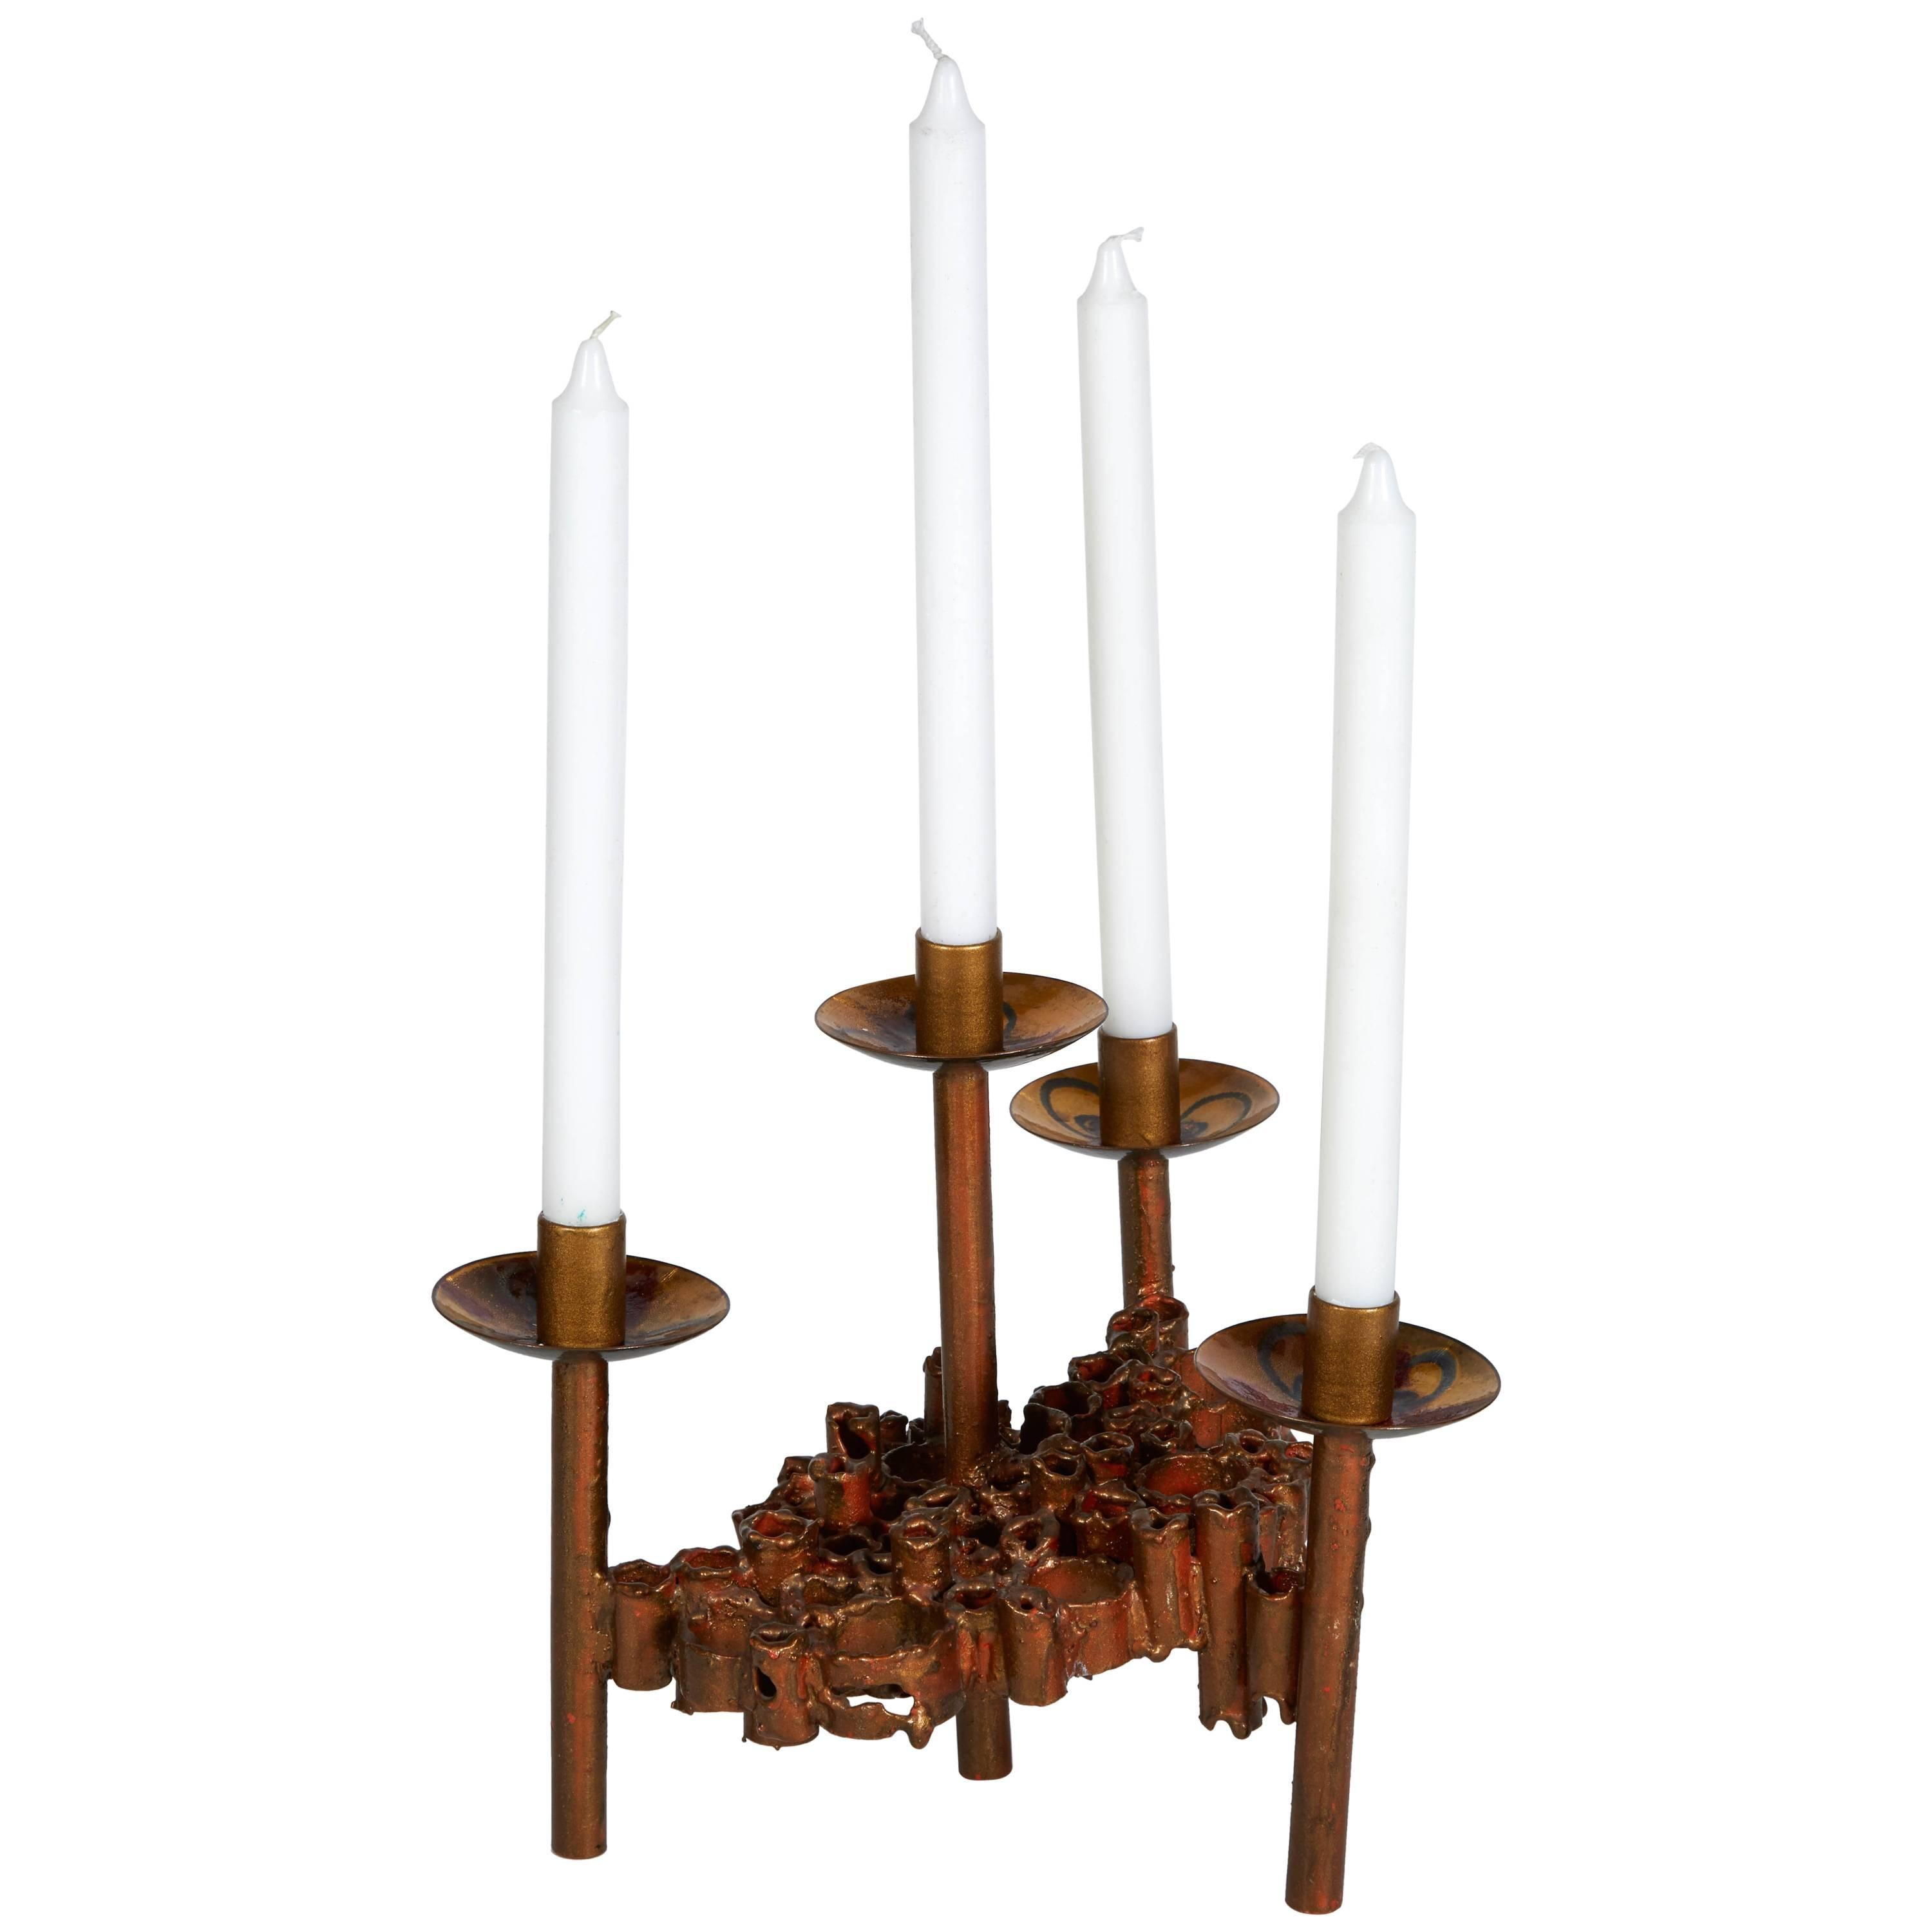 Pair Of 1960S Modern Brass And Copper Sculptural Candleholders After